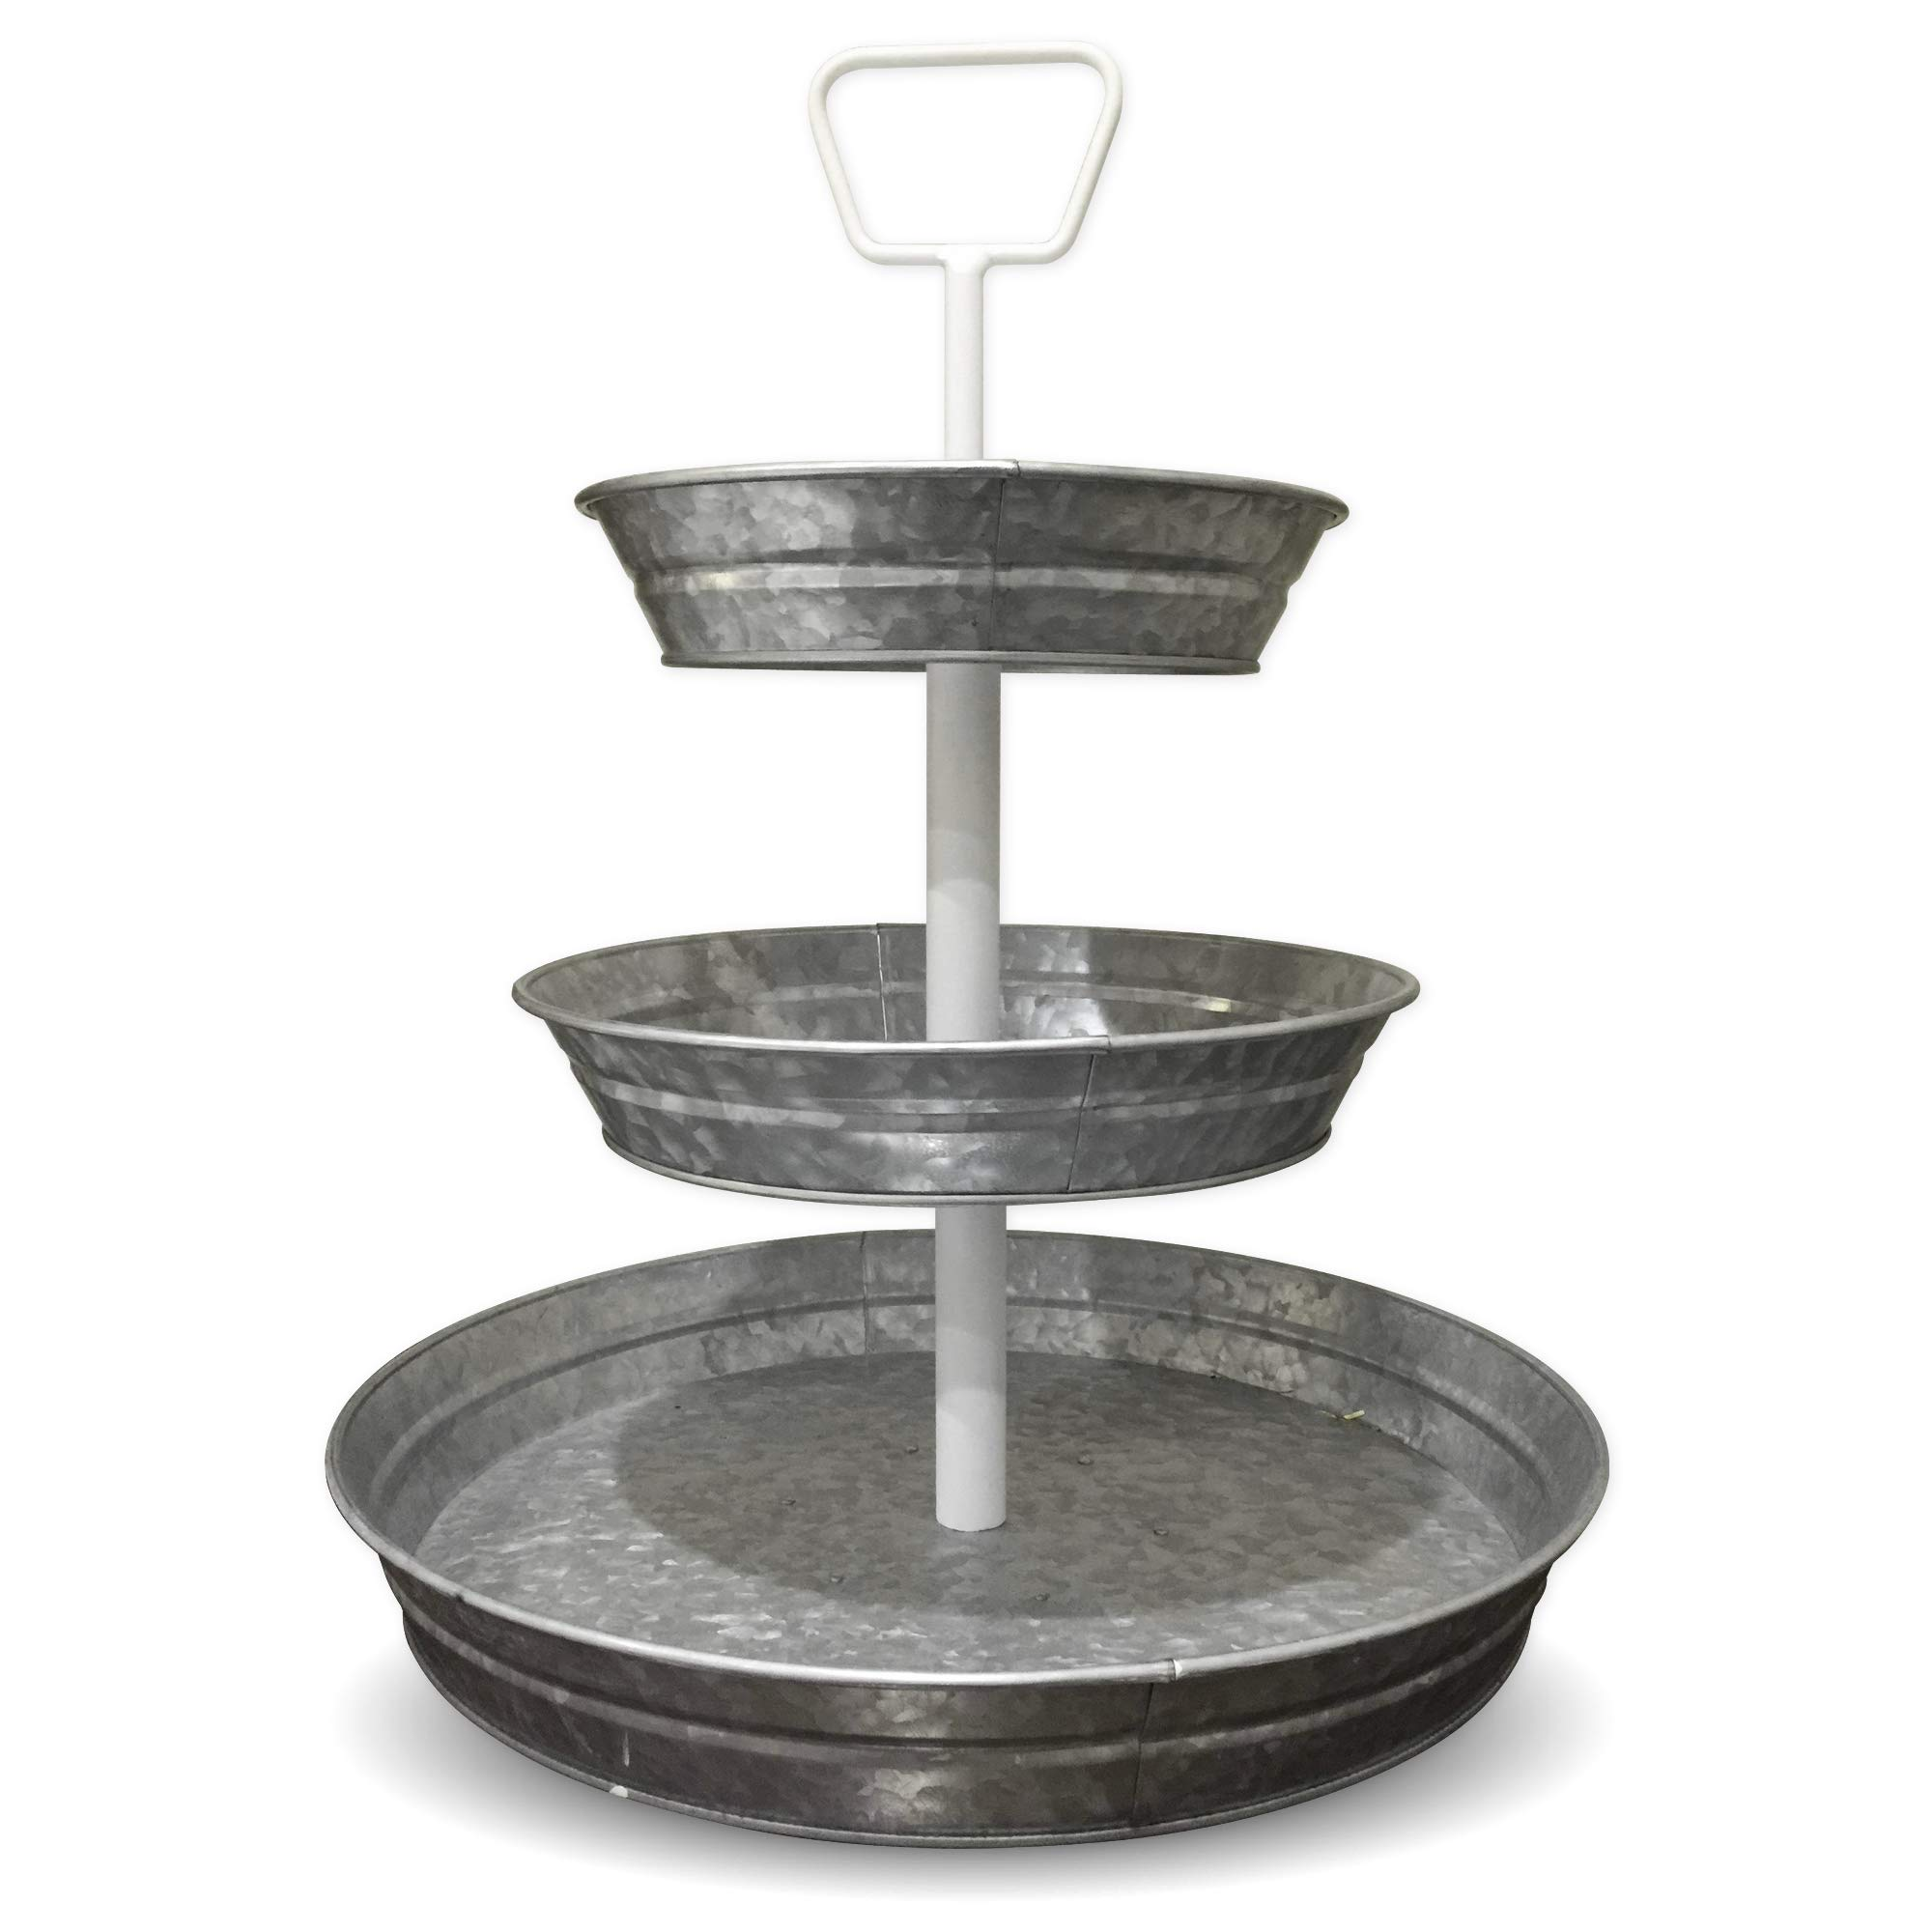 Curly Willow Home Accents 3 Tier Galvanized Round Serving Trays with White Handle